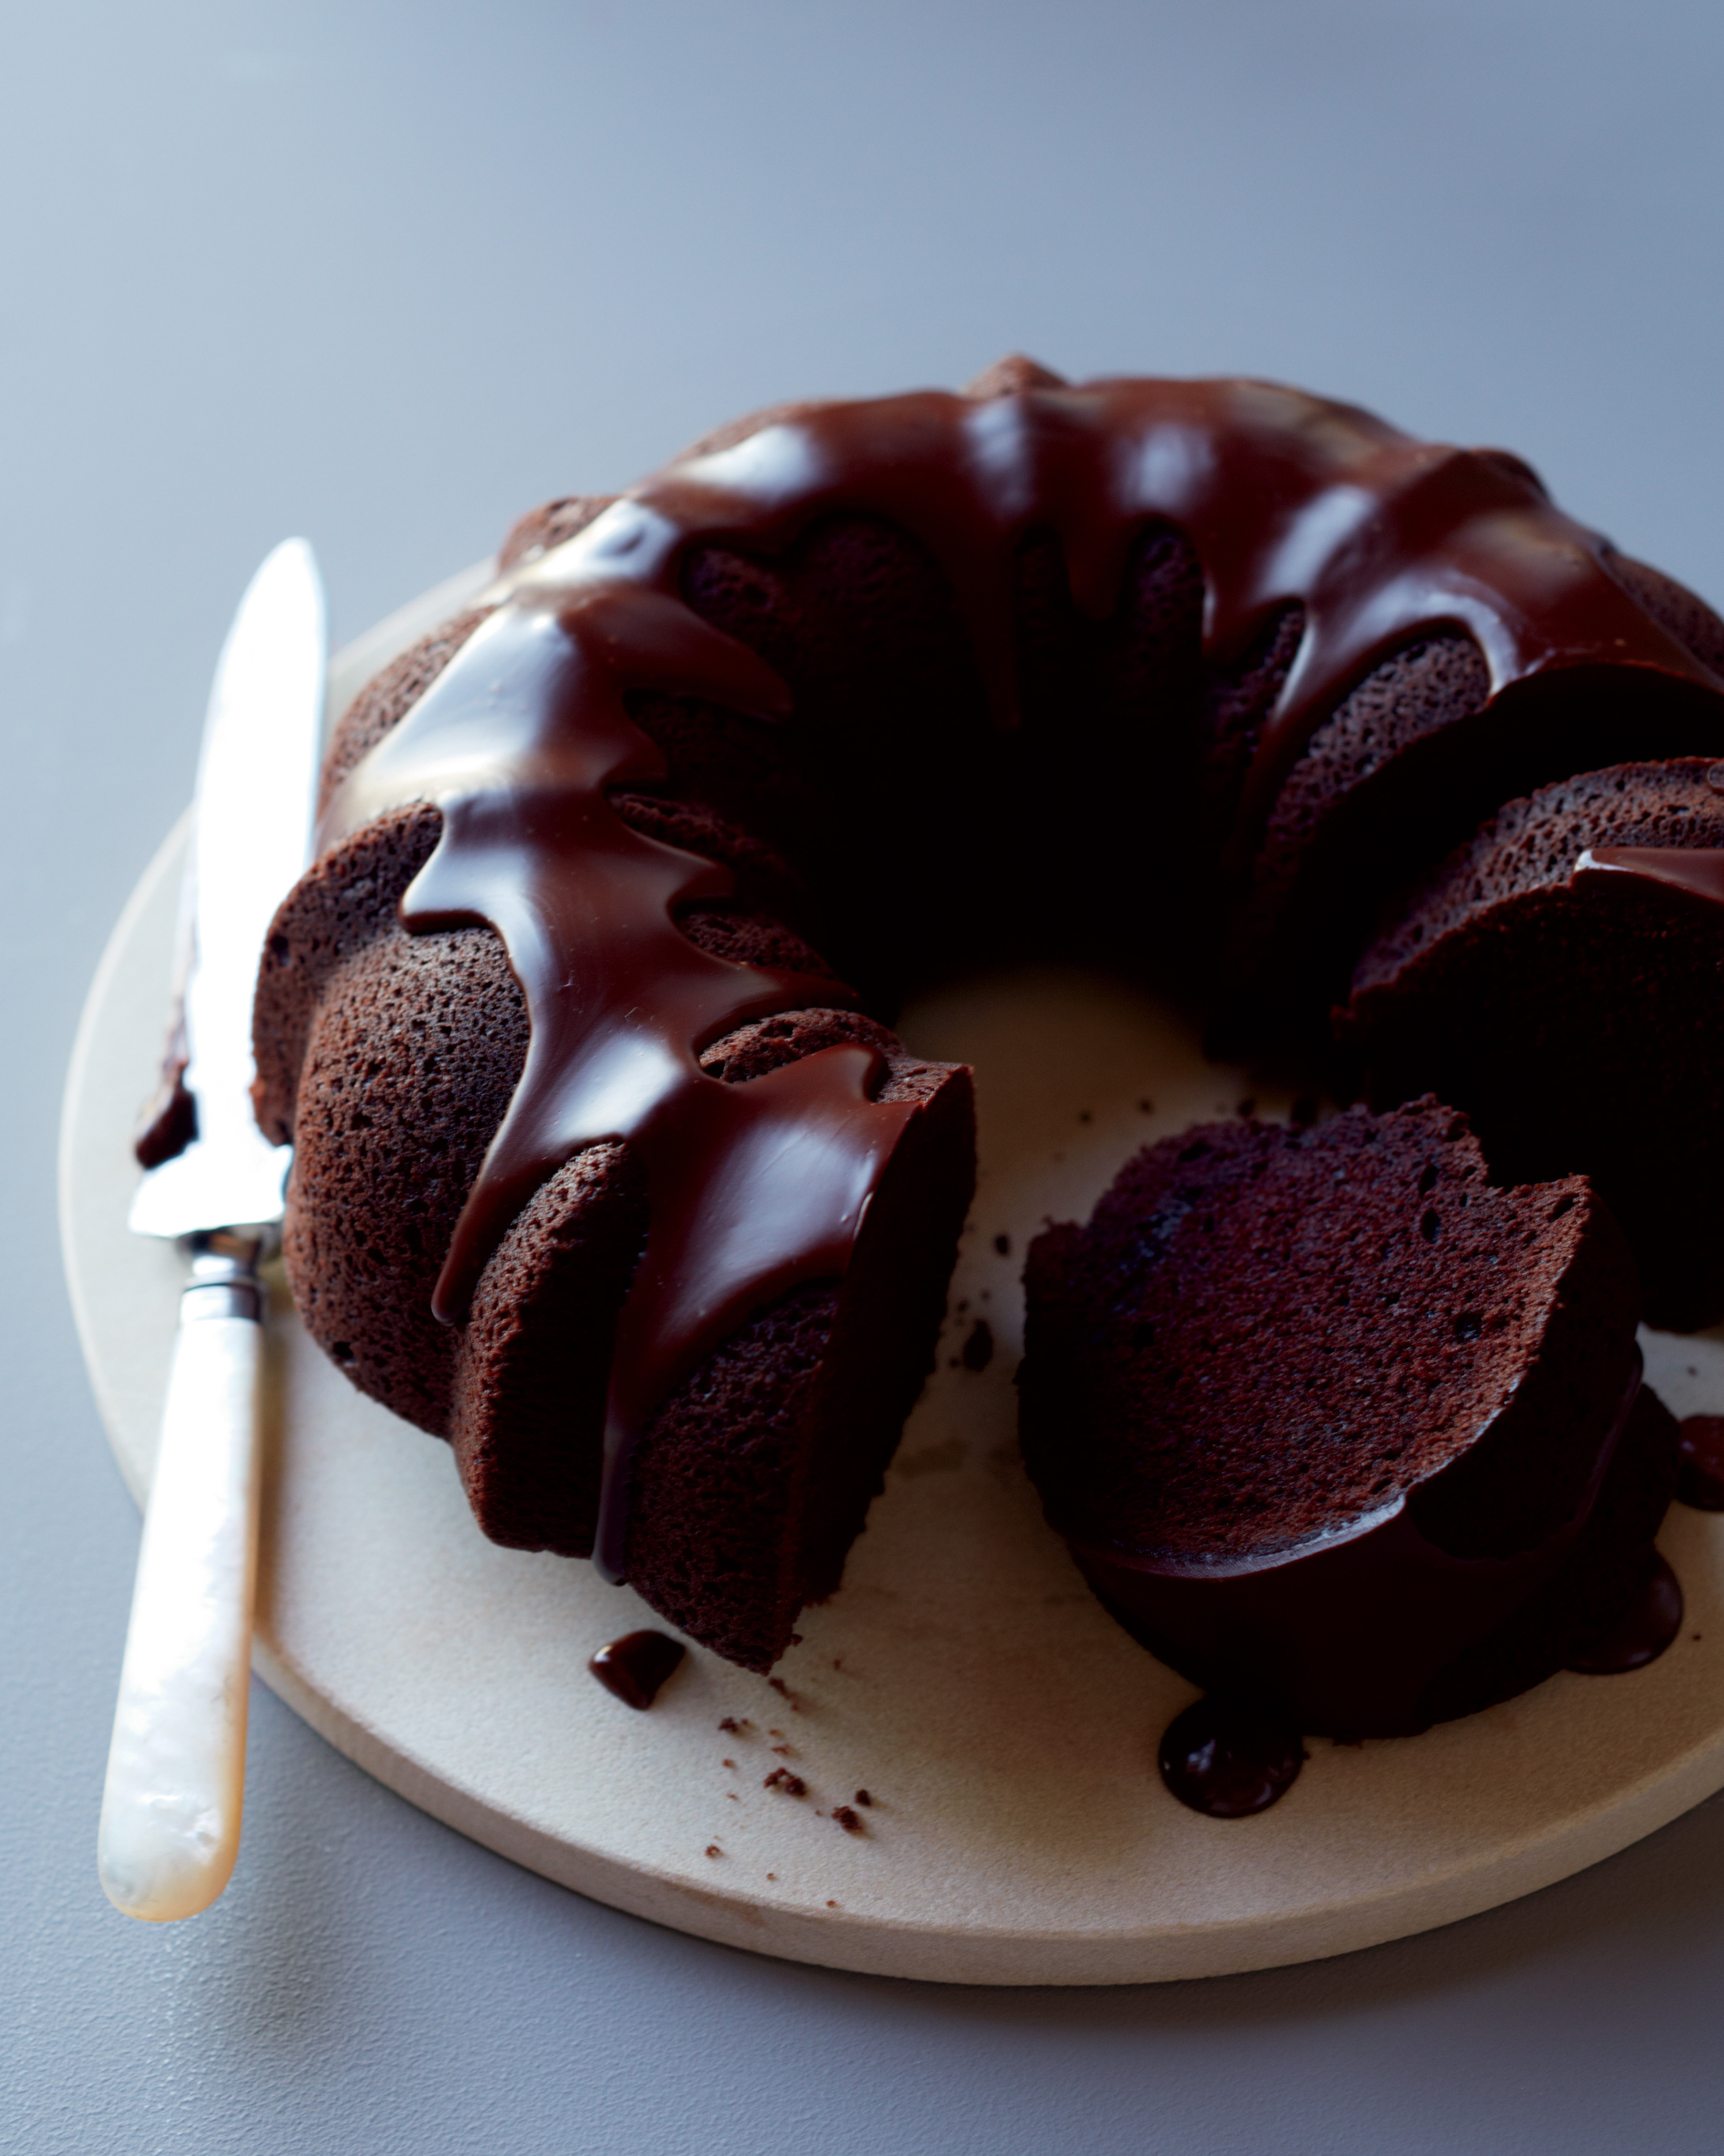 25 Easy Cake Recipes That Every Home Baker Should Master